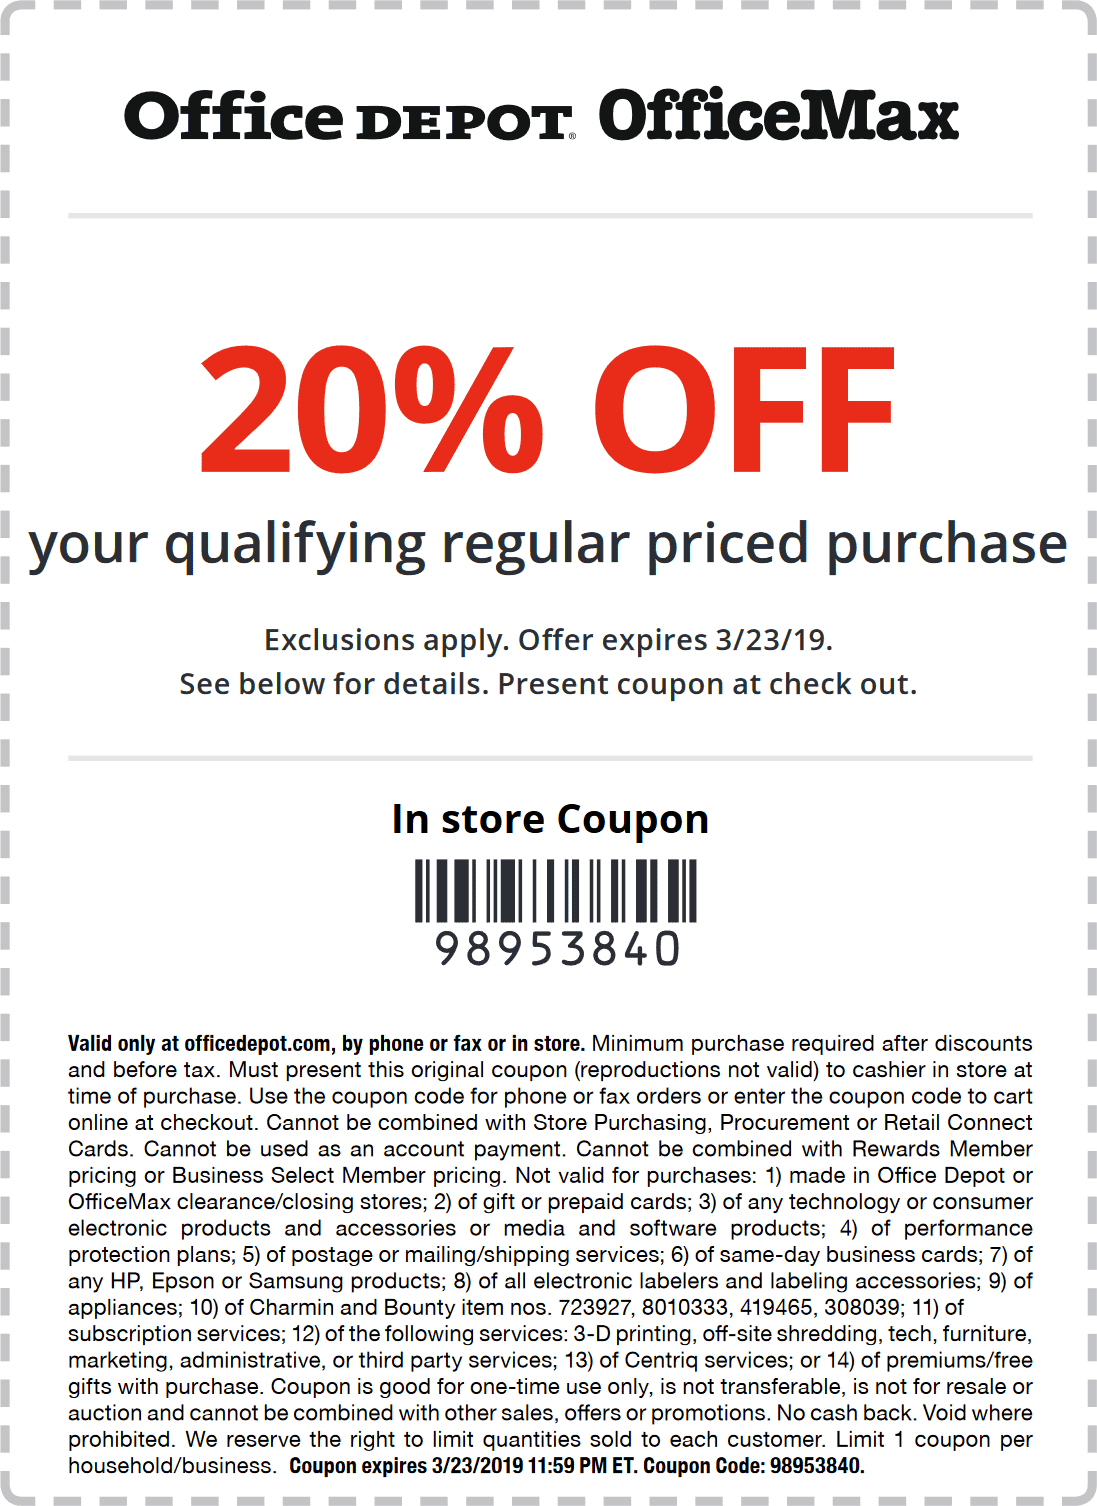 Office Depot Coupon November 2019 20% off at Office Depot & OfficeMax, or online via promo code 98953840